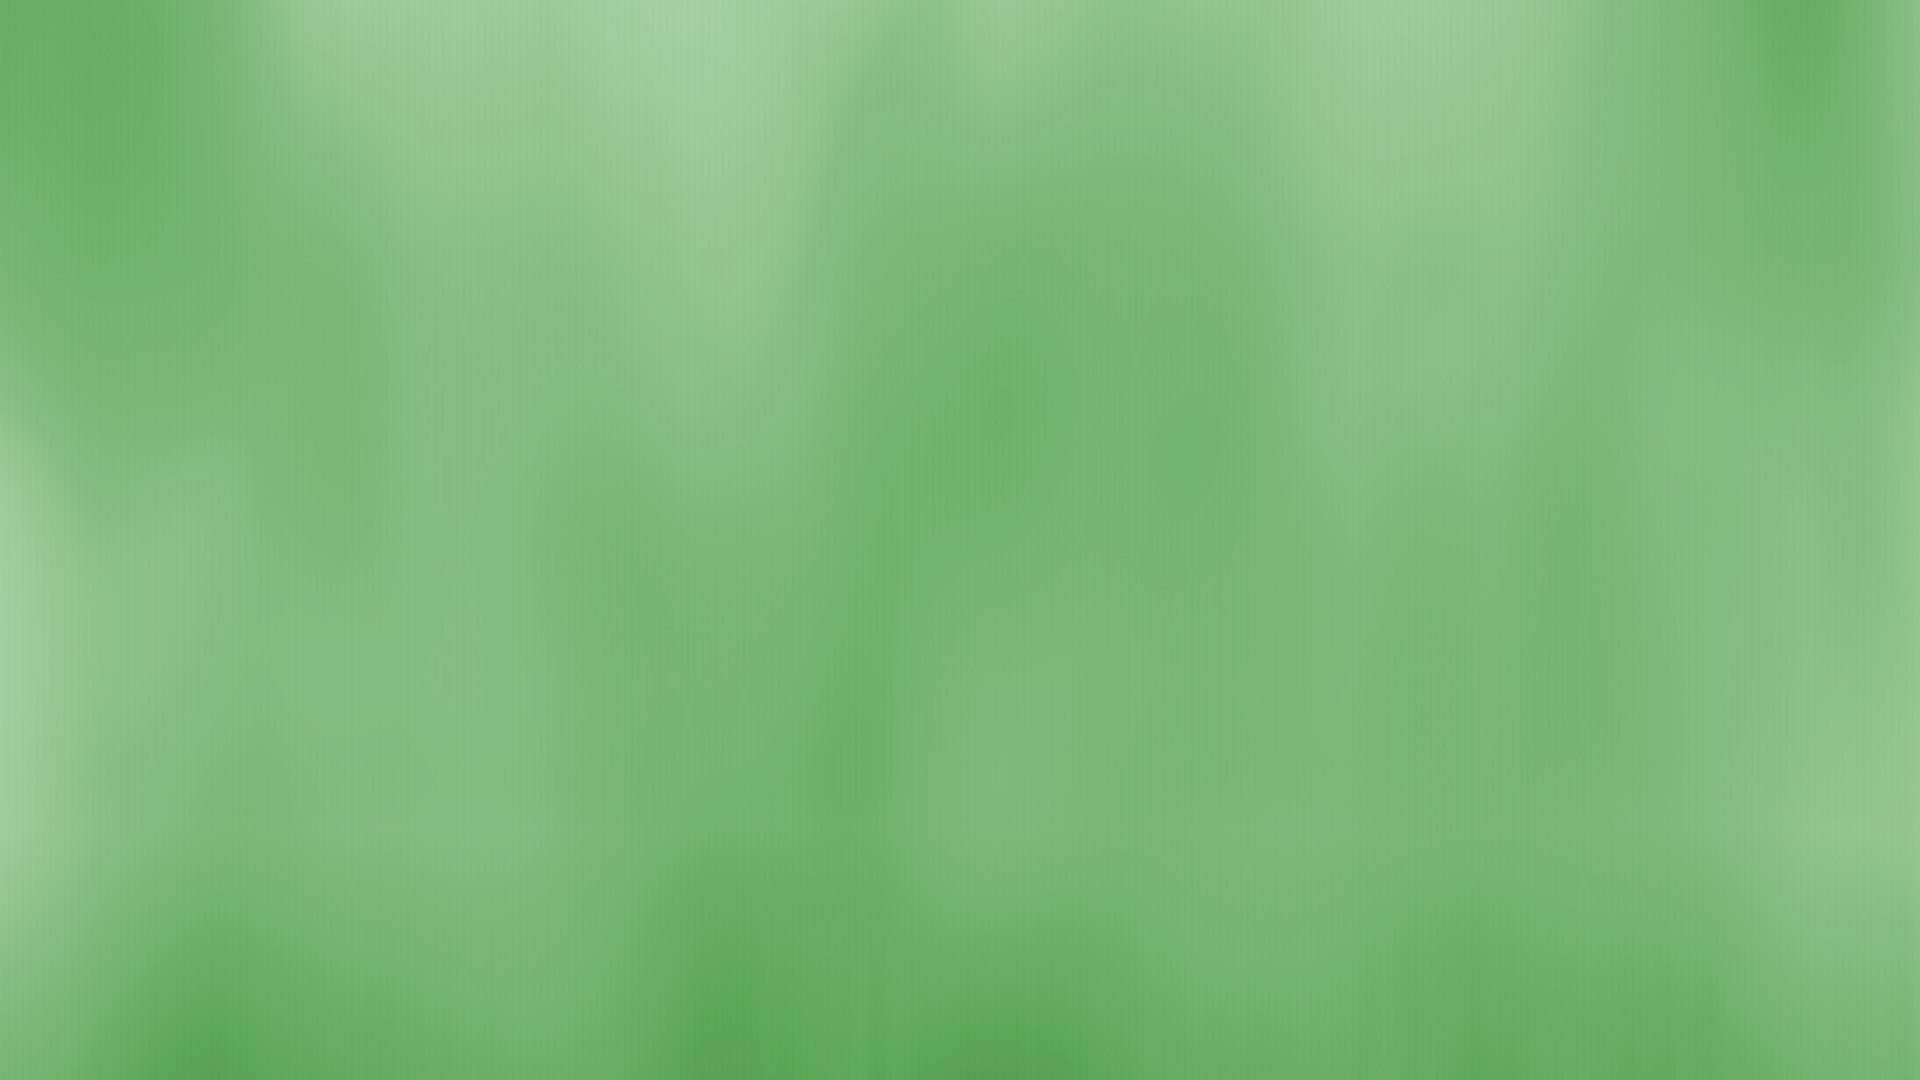 background web green 1920x1080